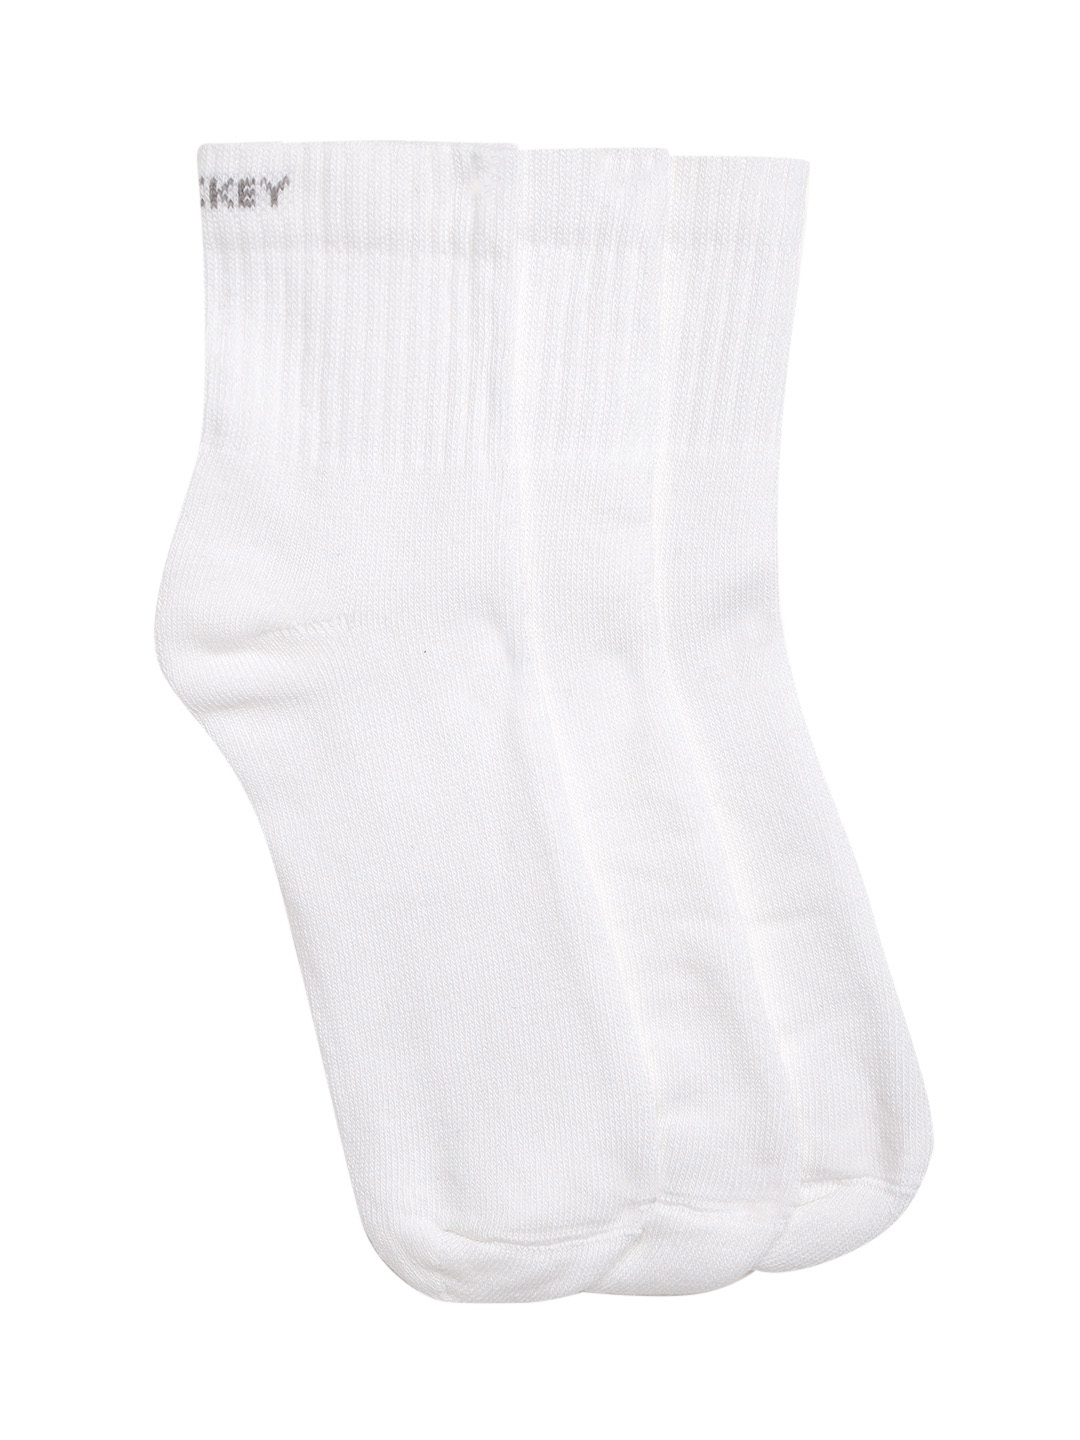 Jockey Men Pack of 3 White Solid Ankle Length Socks